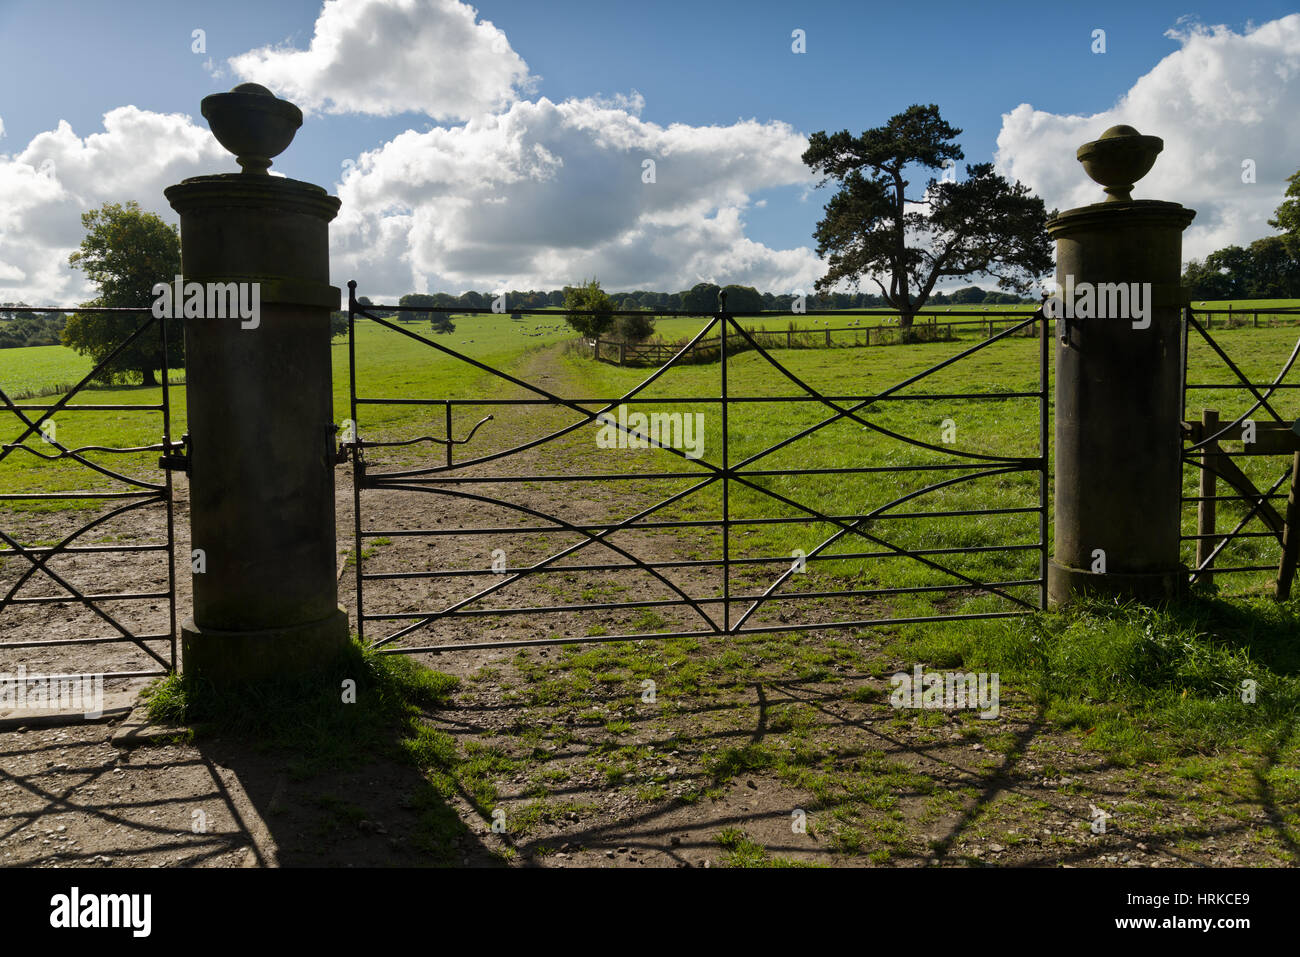 Estate gate at Bretton Hall, Yorkshire. Stone pillars with nice wrought iron metalwork. - Stock Image